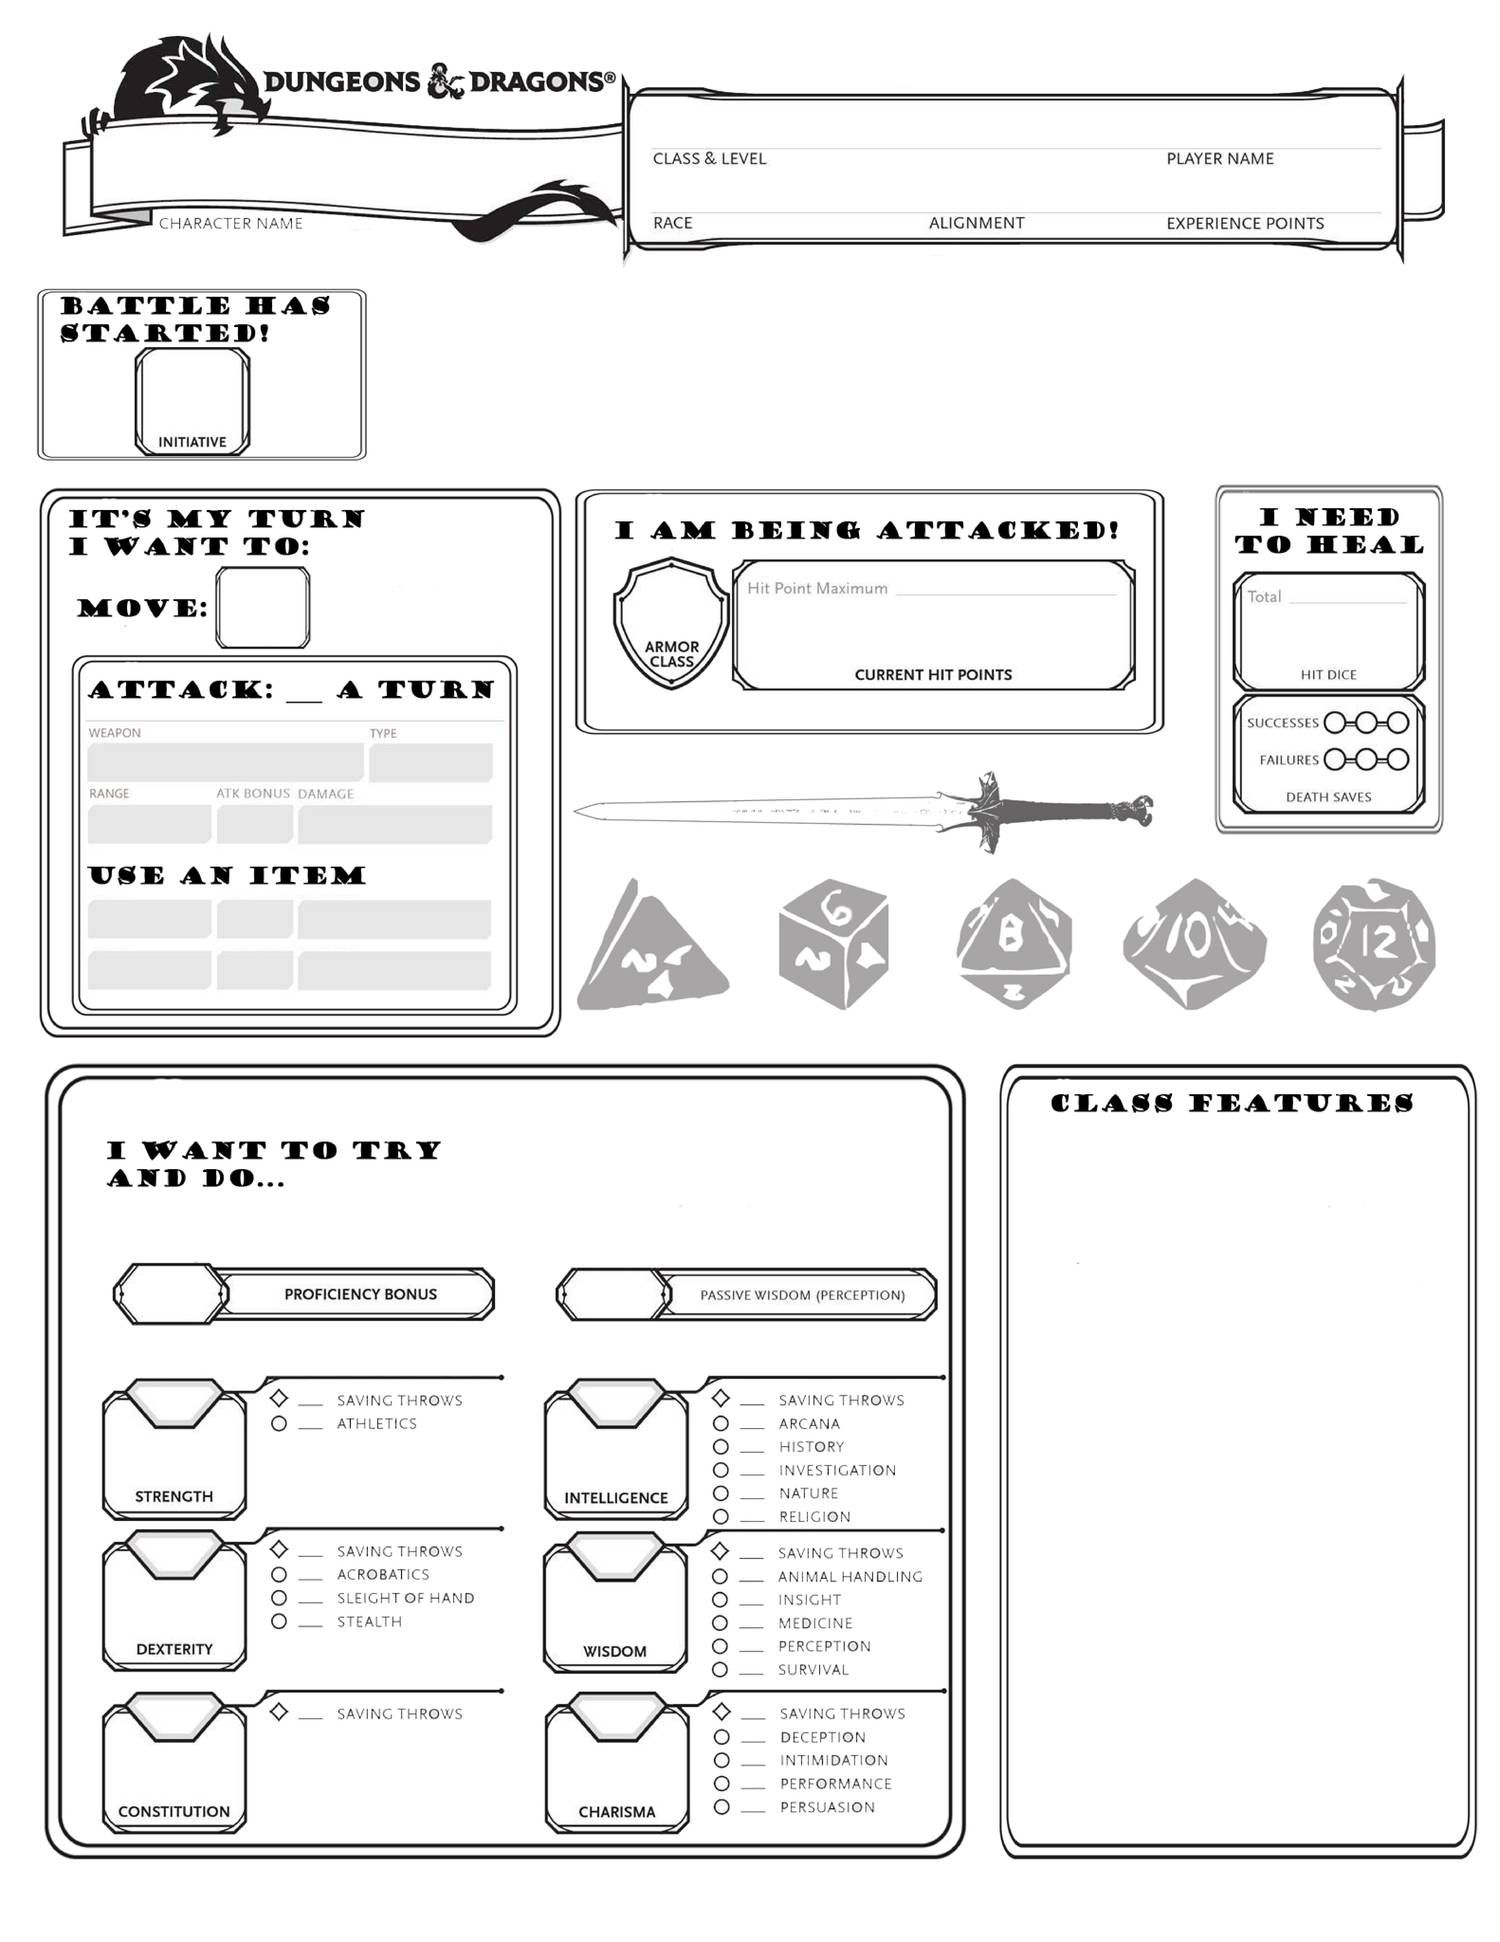 Cleaneasysheet Pdf With Images Dnd Character Sheet Character